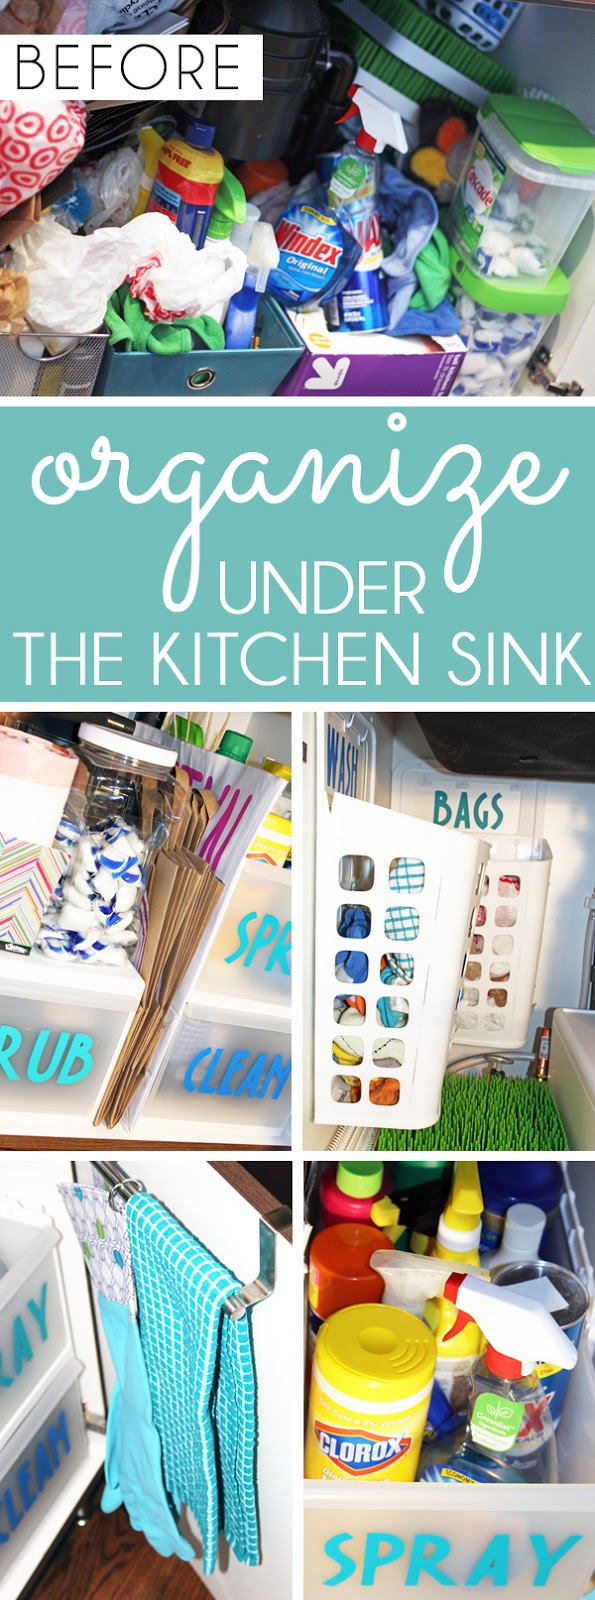 Organize Under A Sink - Under Sink Storage